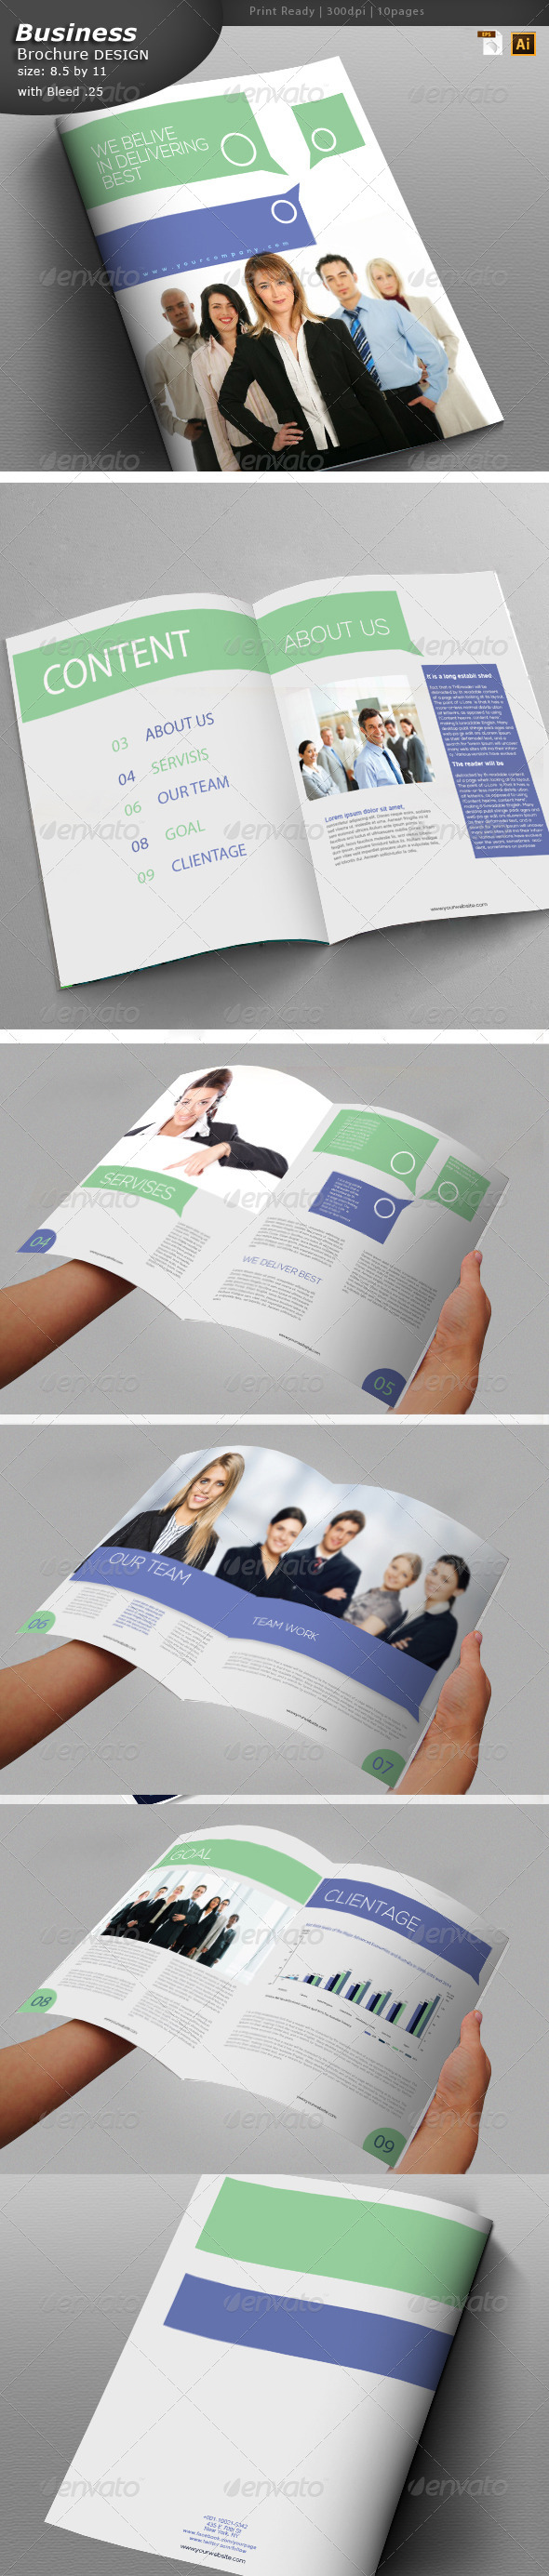 GraphicRiver Business Brochure Design 5822806